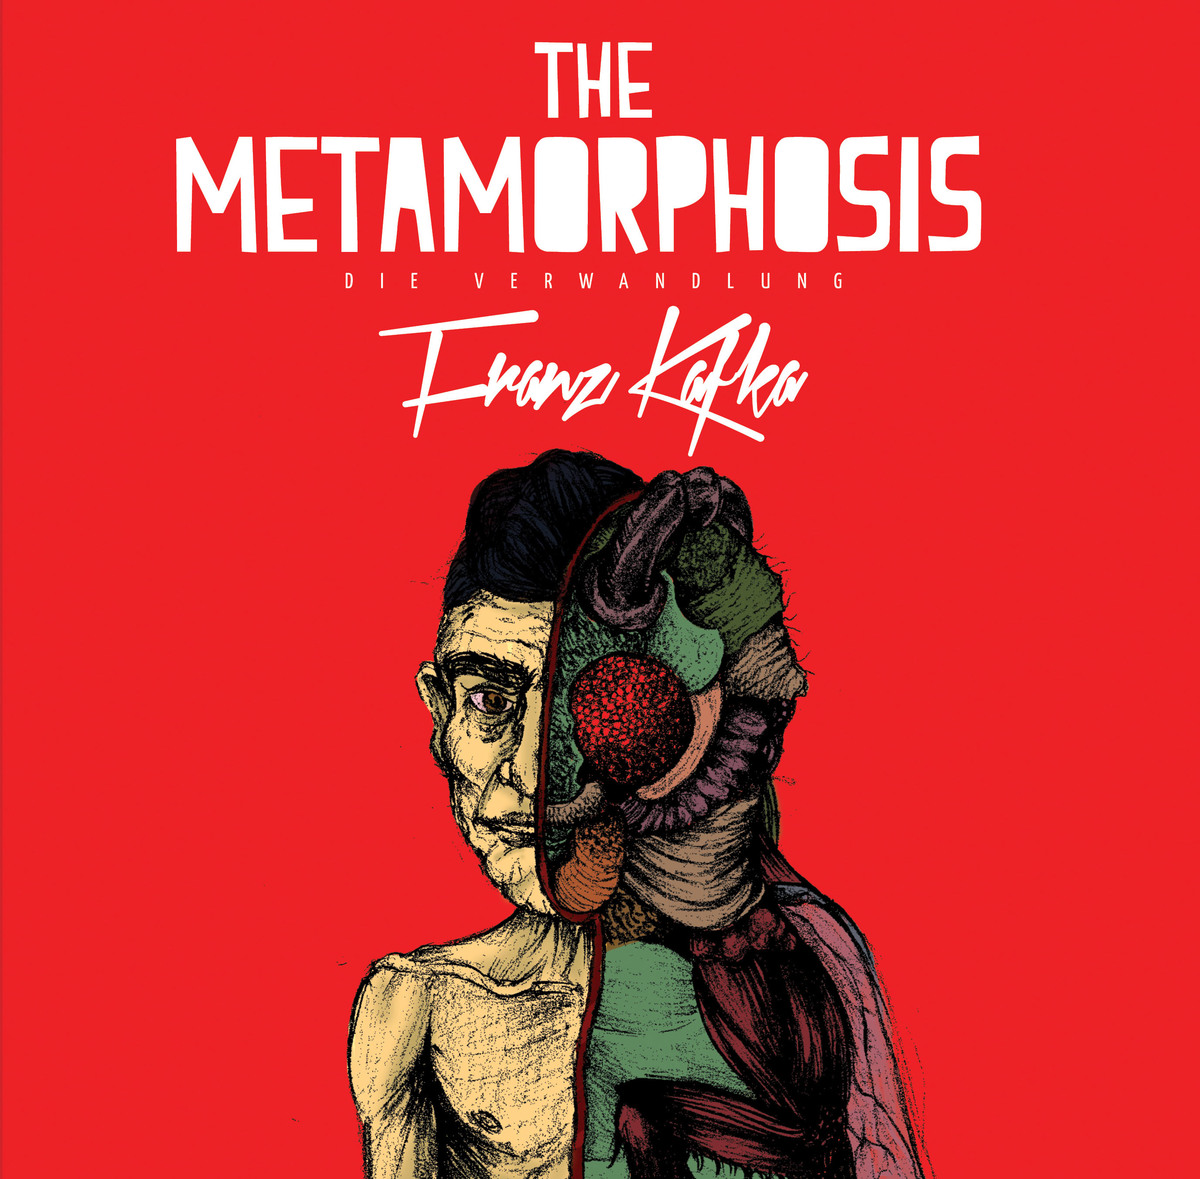 an analysis of the concept of imprisonment in the novel metamorphosis by franz kafka